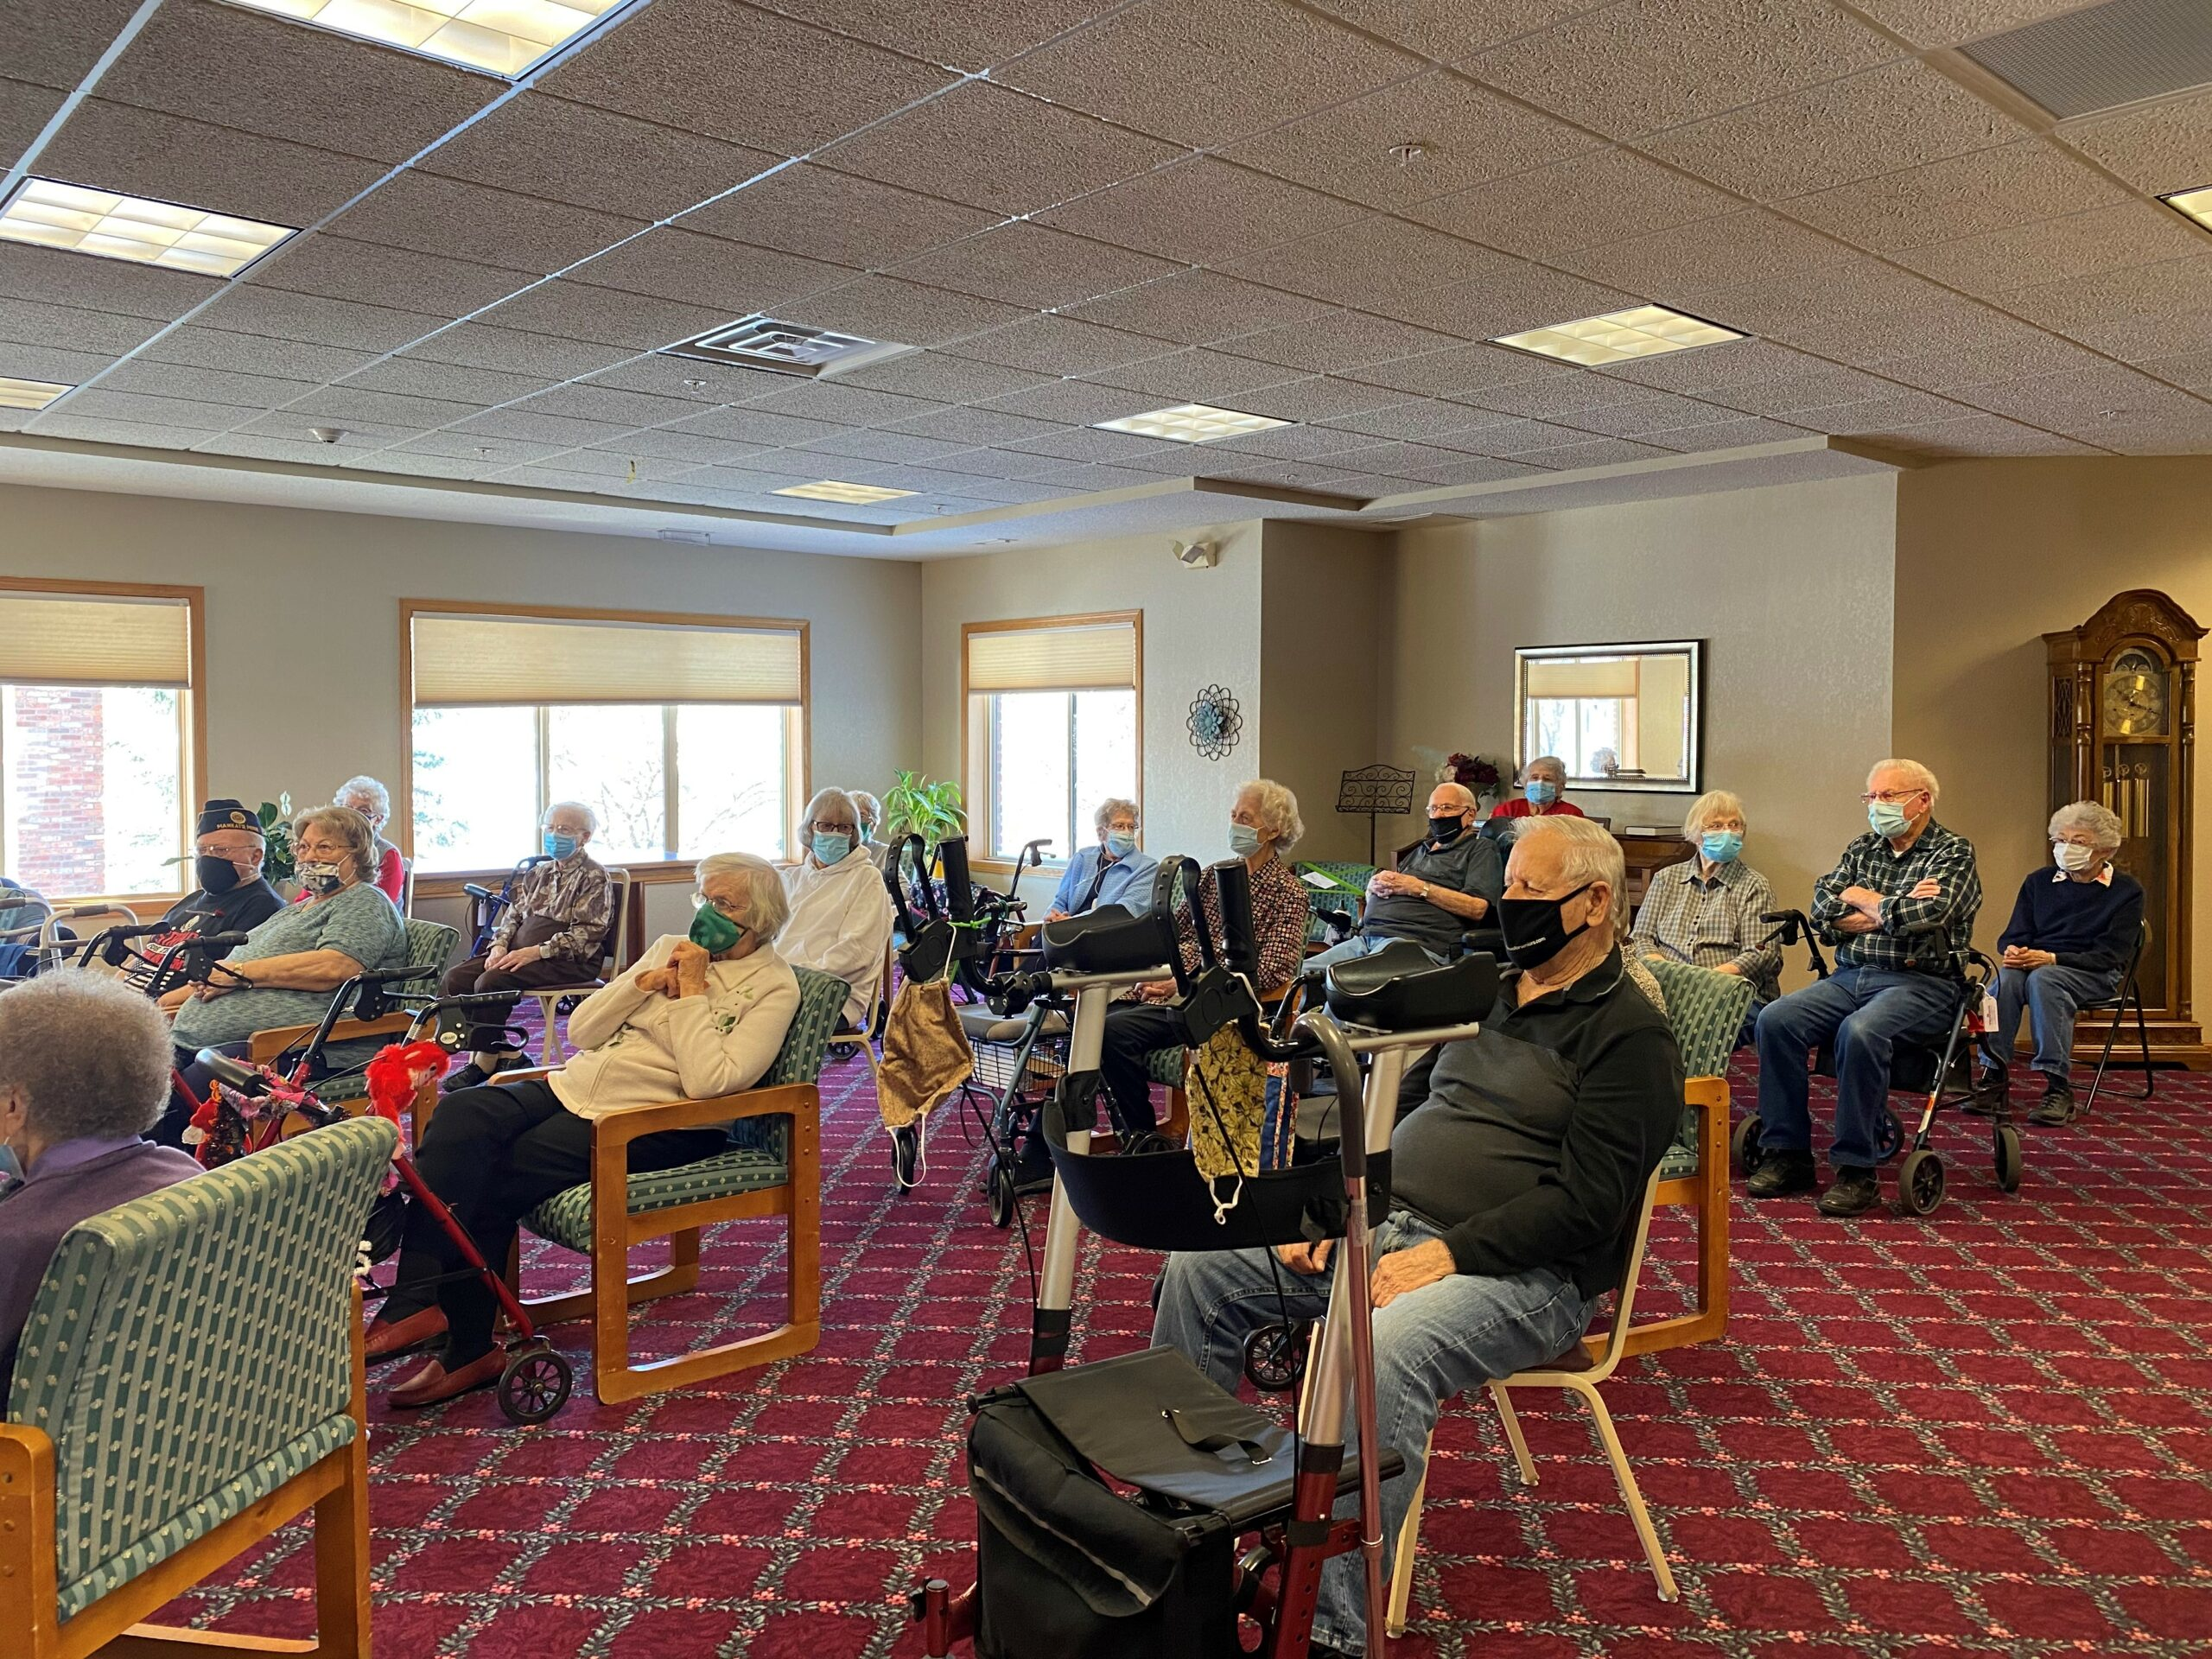 So many residents showed up to pay tribute to our Veterans on Veterans Day!